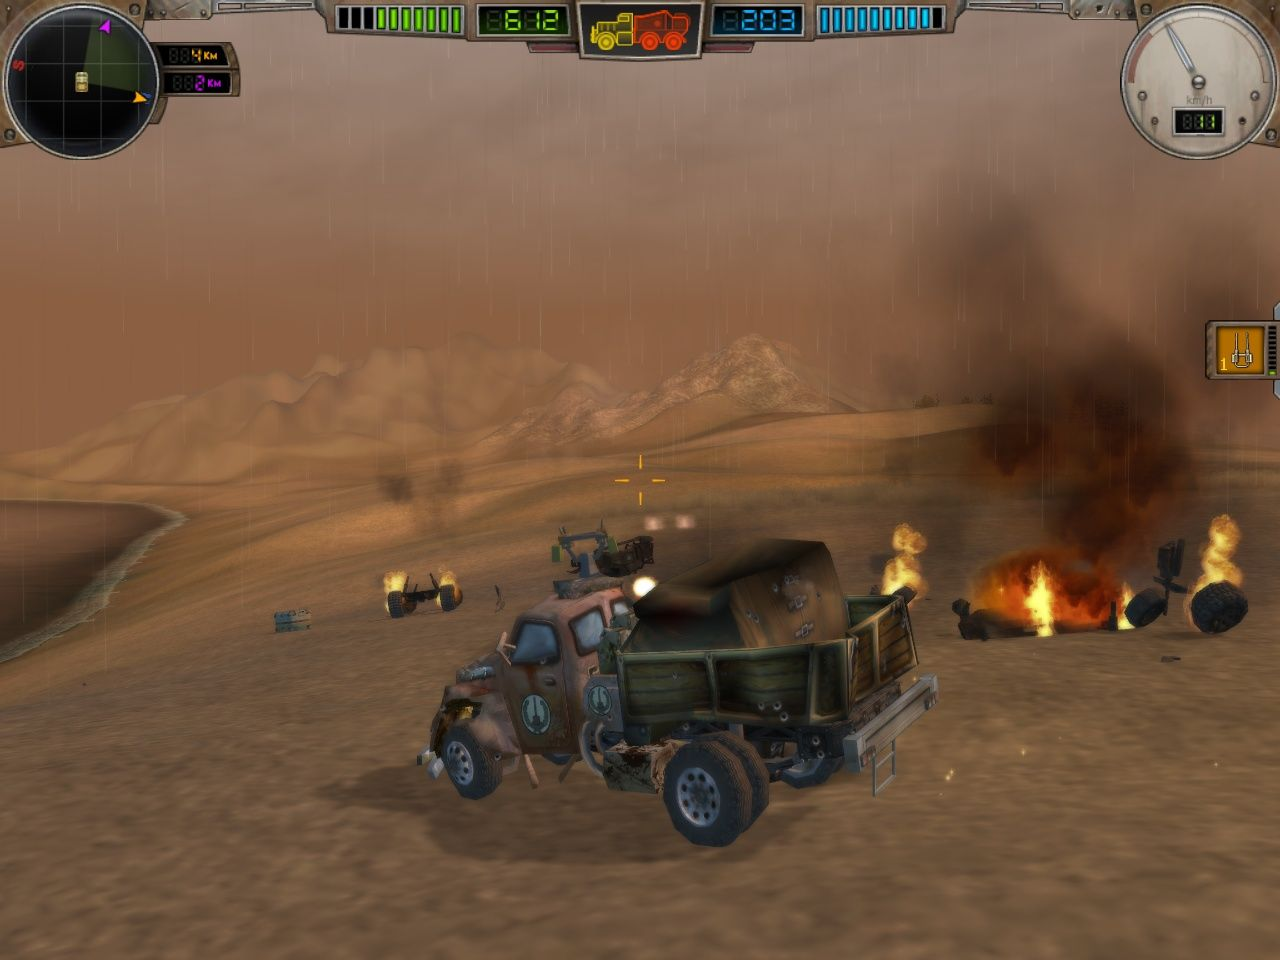 Hard Truck: Apocalypse Windows Combat #3: The result of the fighting. My truck is pretty banged up, but look at the other guys! Now I can loot their wreckage